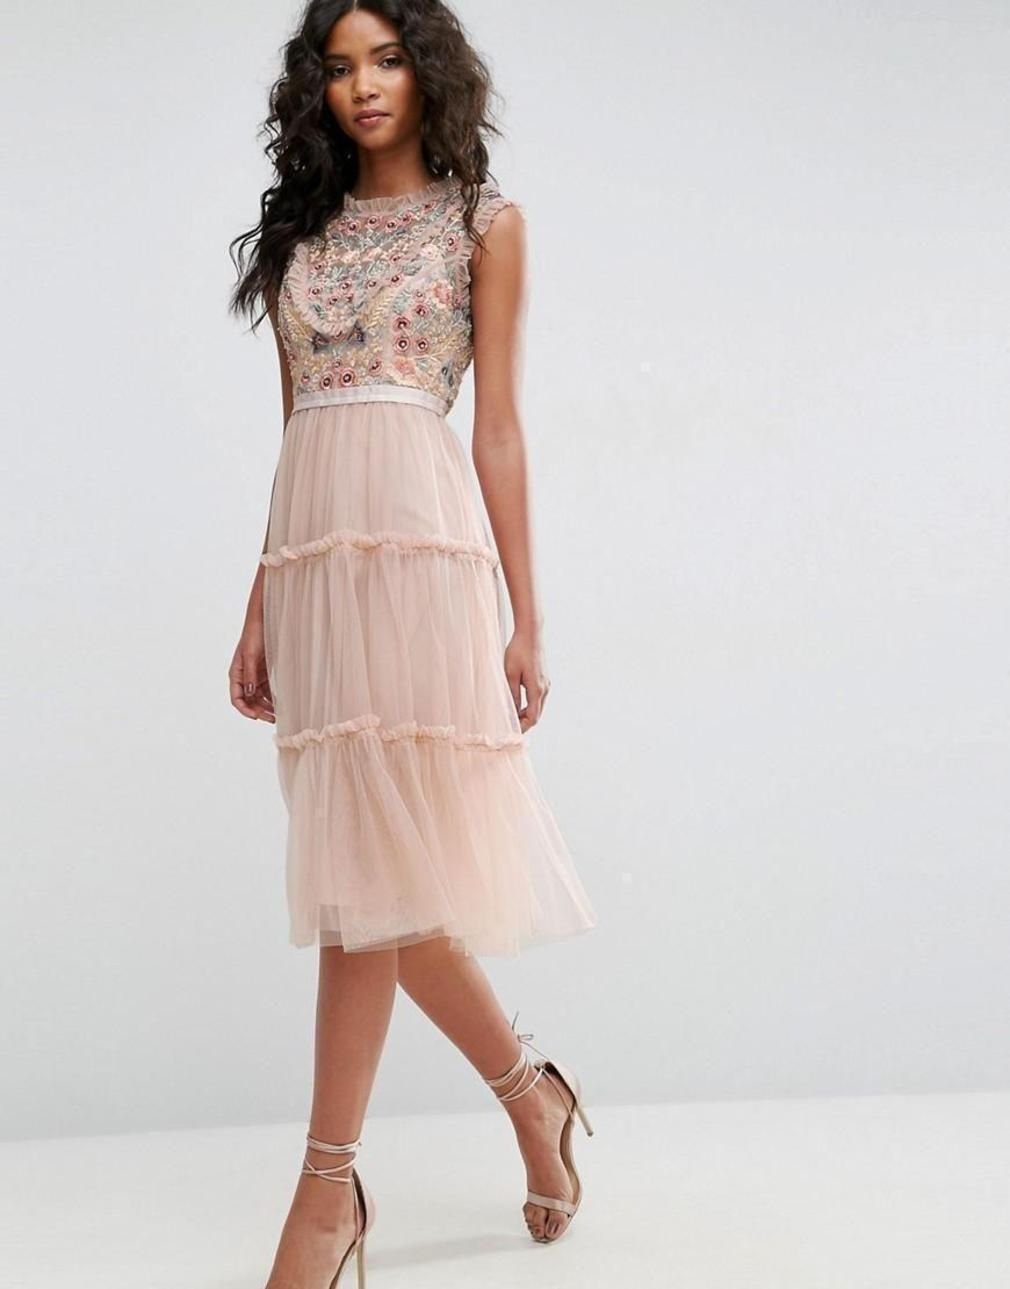 fac5eefb84097 Needle thread sundaze embellished tulle midi dress standard